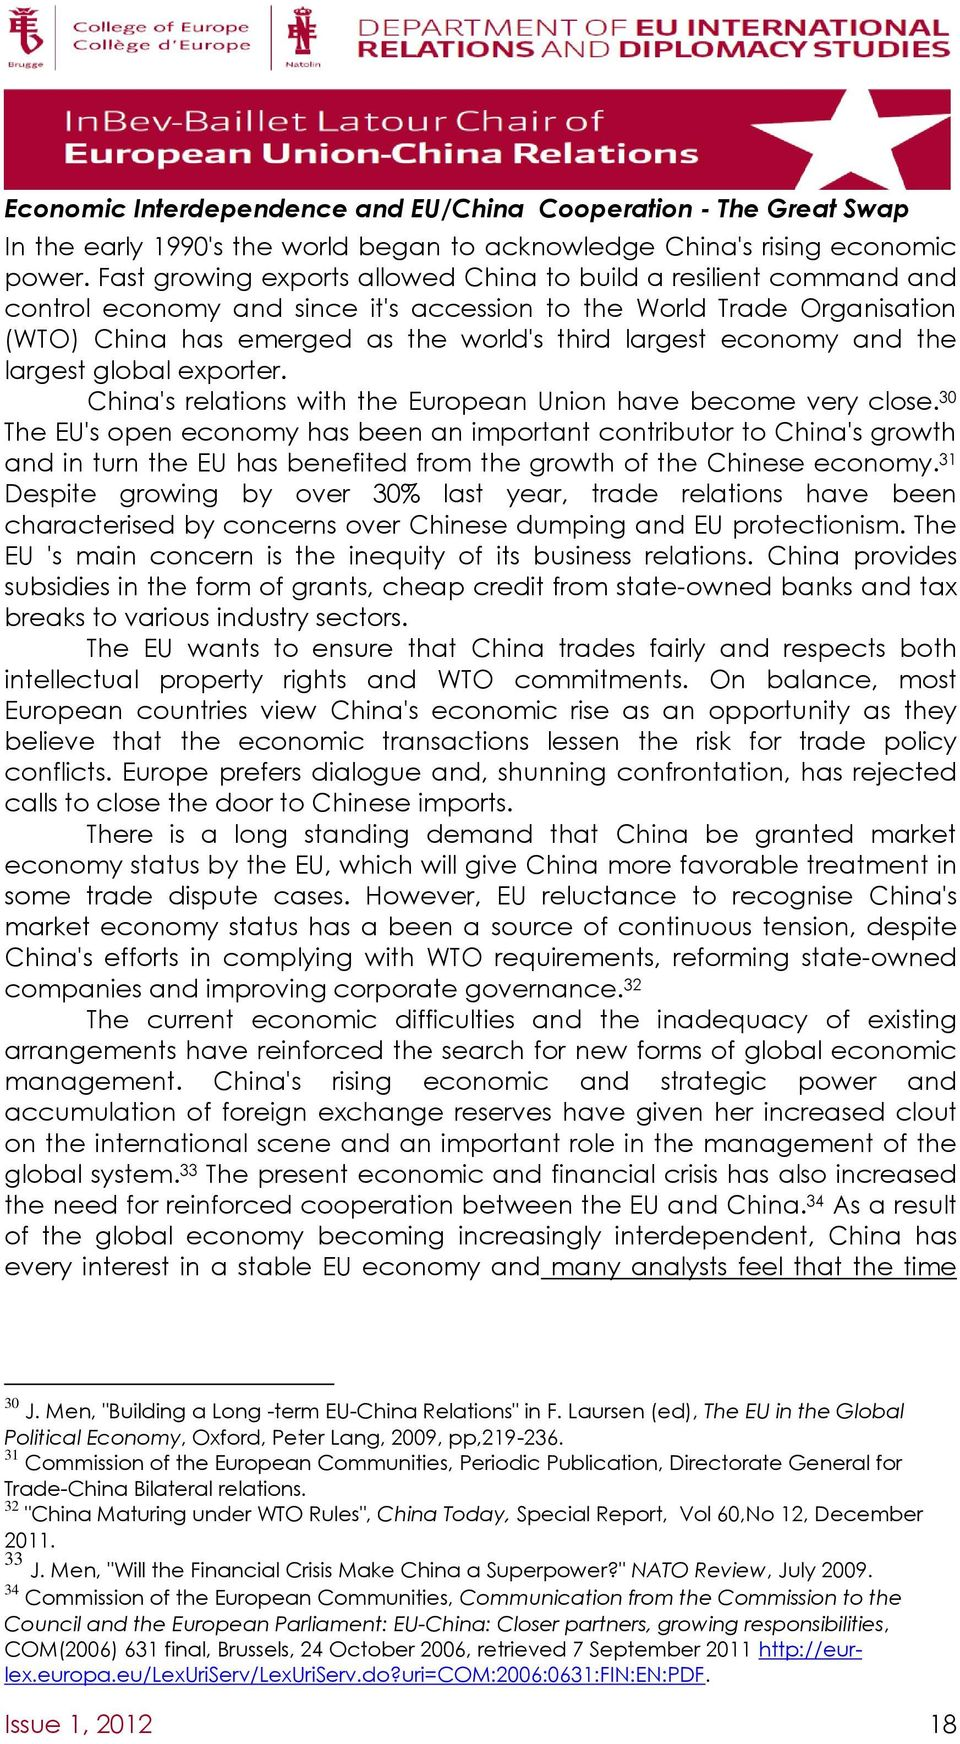 economy and the largest global exporter. China's relations with the European Union have become very close.